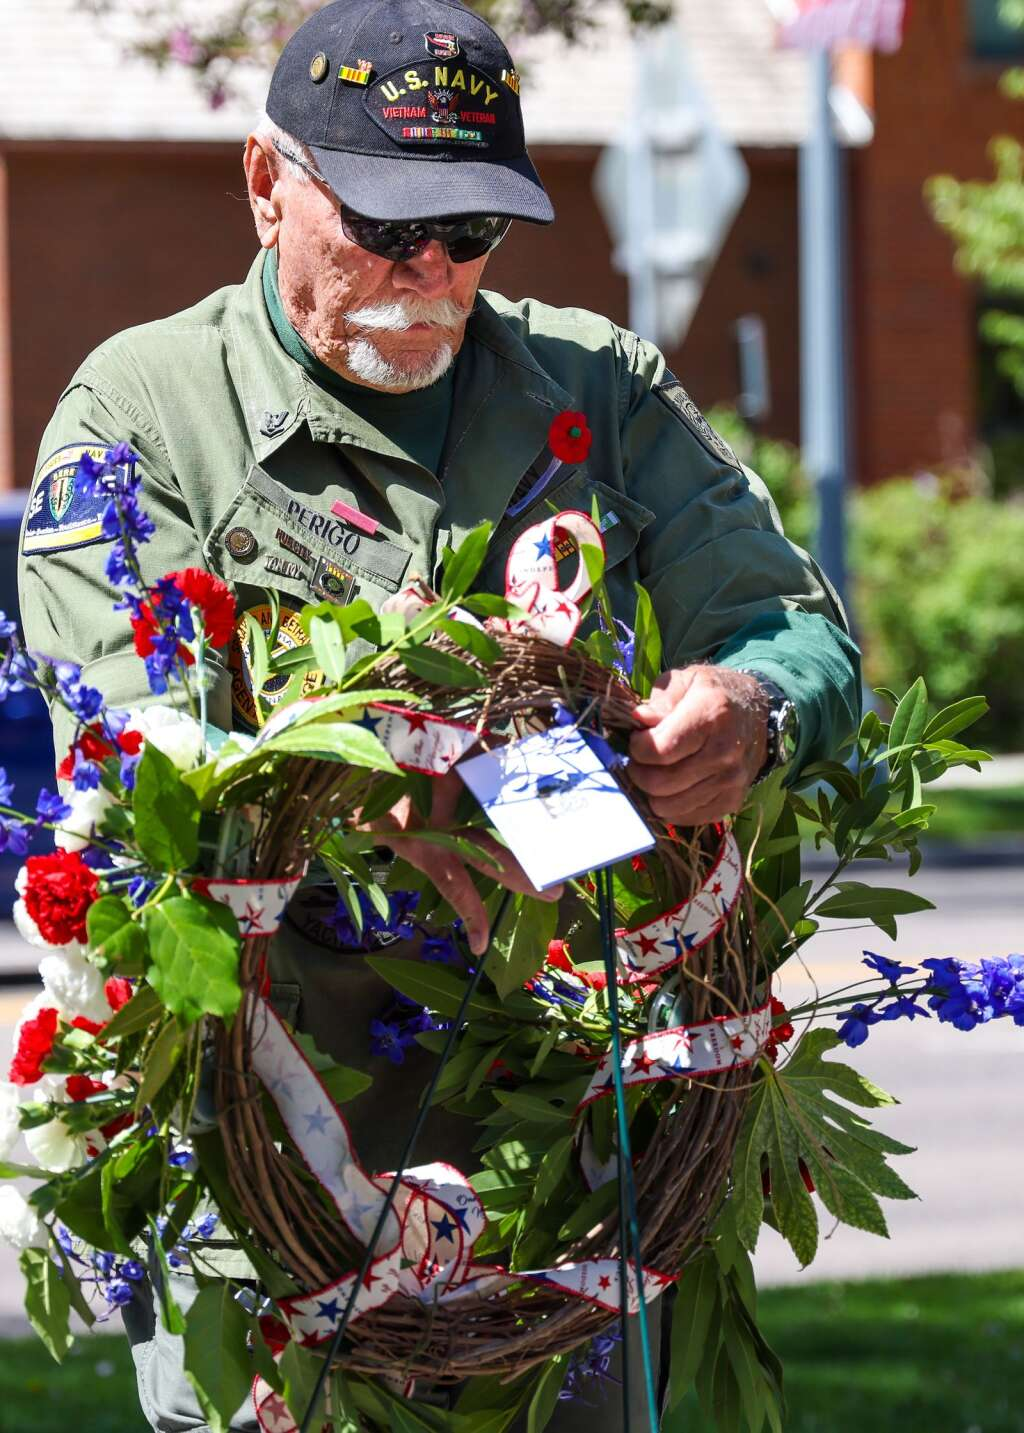 Gunny Perigo brings in the wreath to start the annual Memorial Day ceremony on Monday, May 31, 2021, at Pitkin County Veterans Memorial Park in Aspen. Photo by Austin Colbert/The Aspen Times.